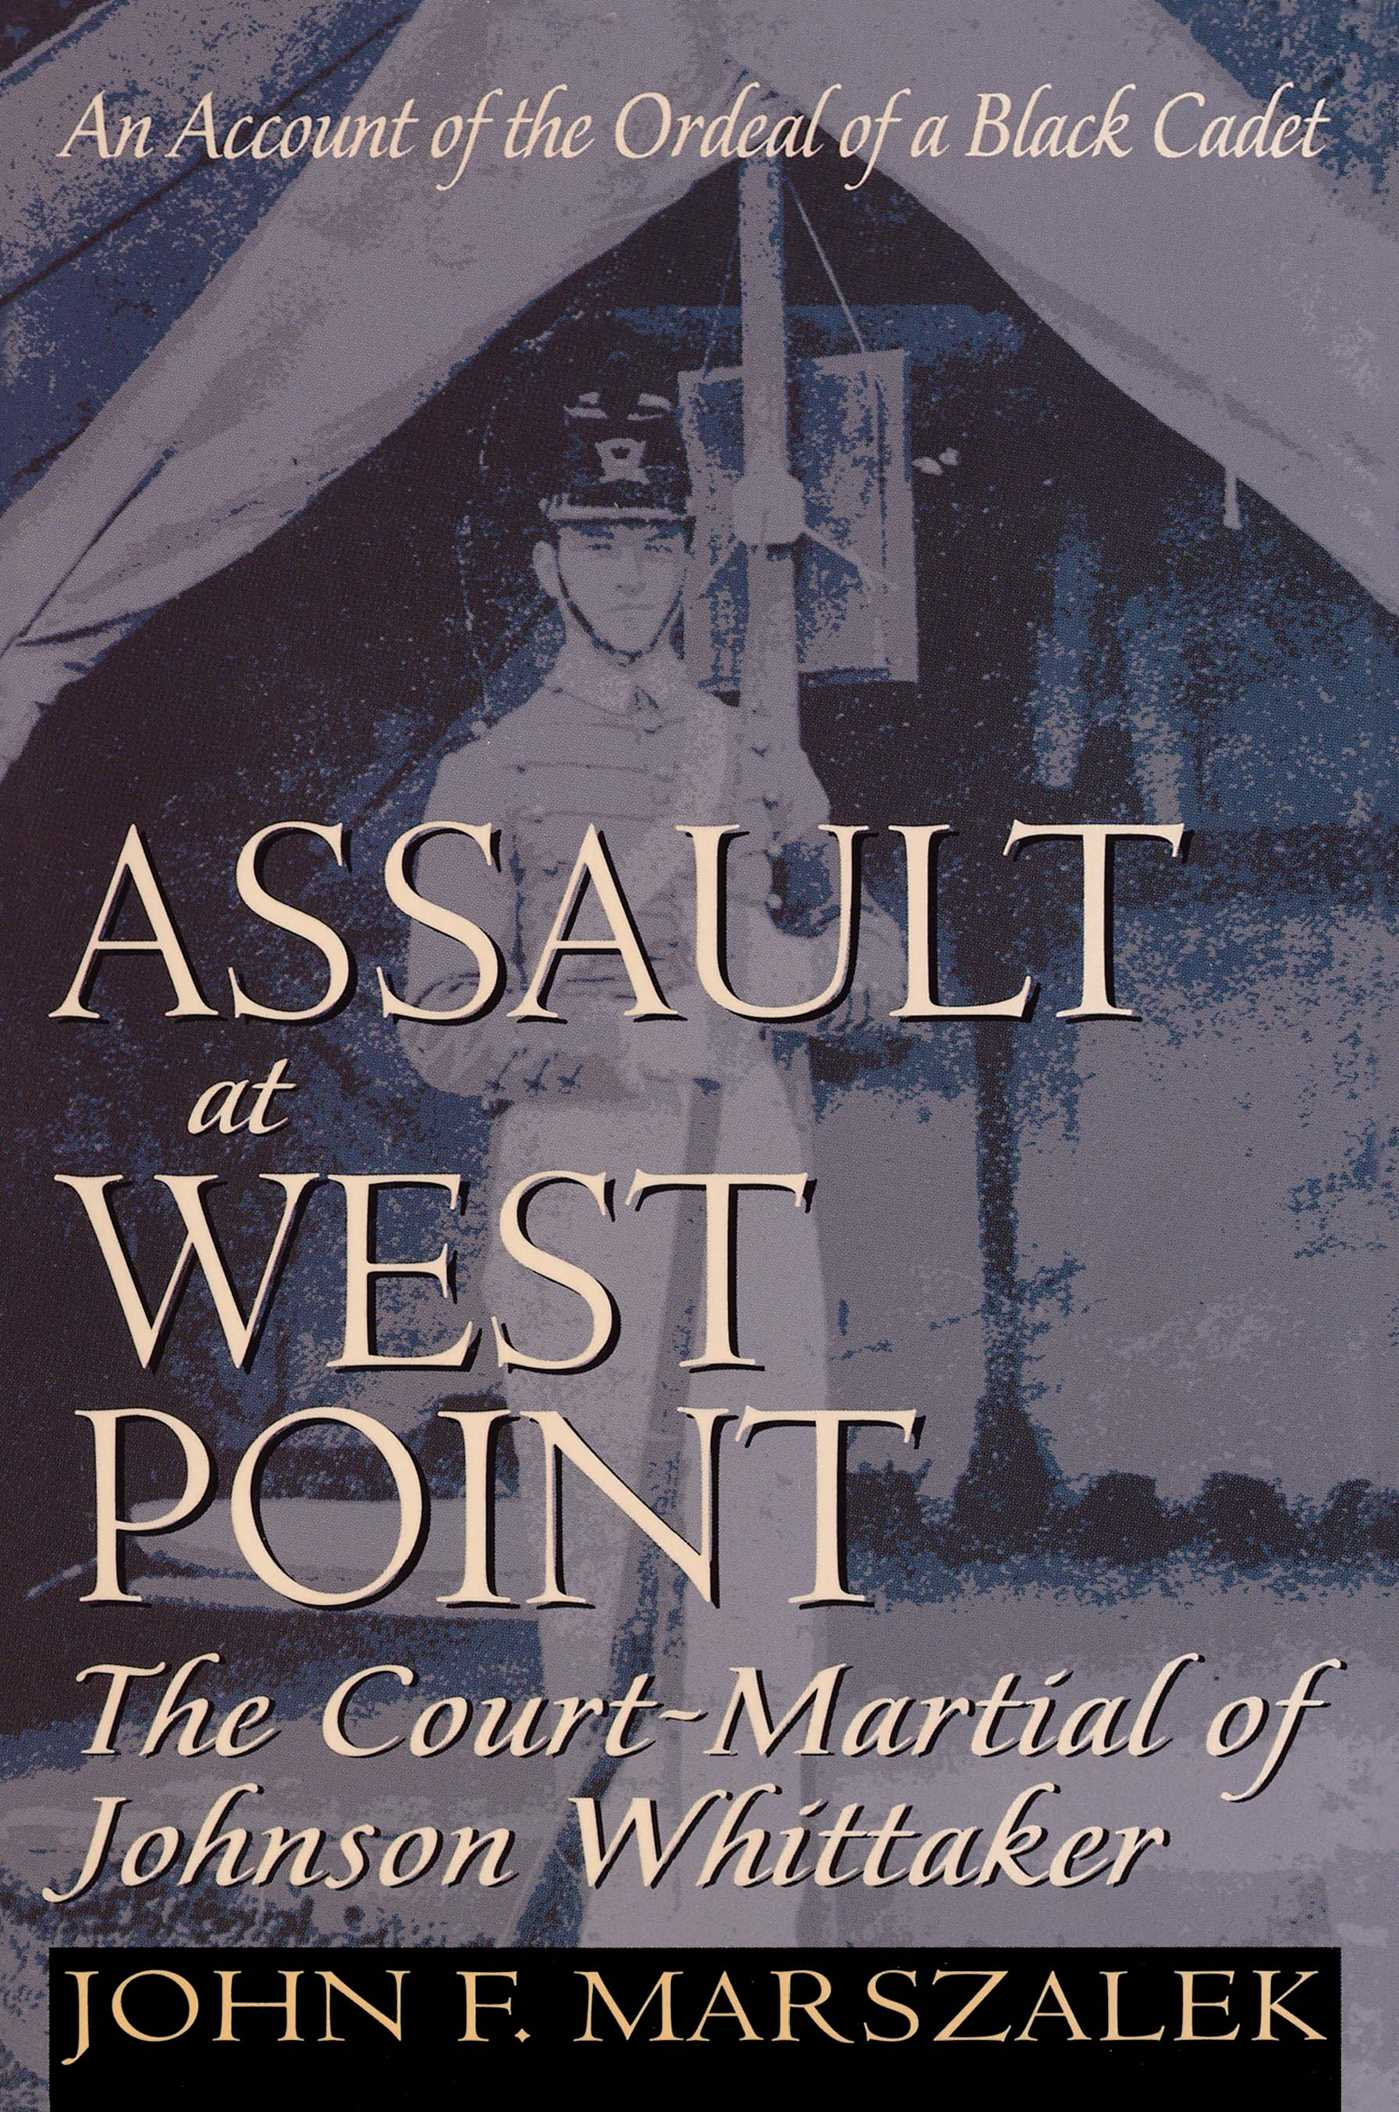 Assault at west point the court martial of johnson whittaker 9780020345152 hr